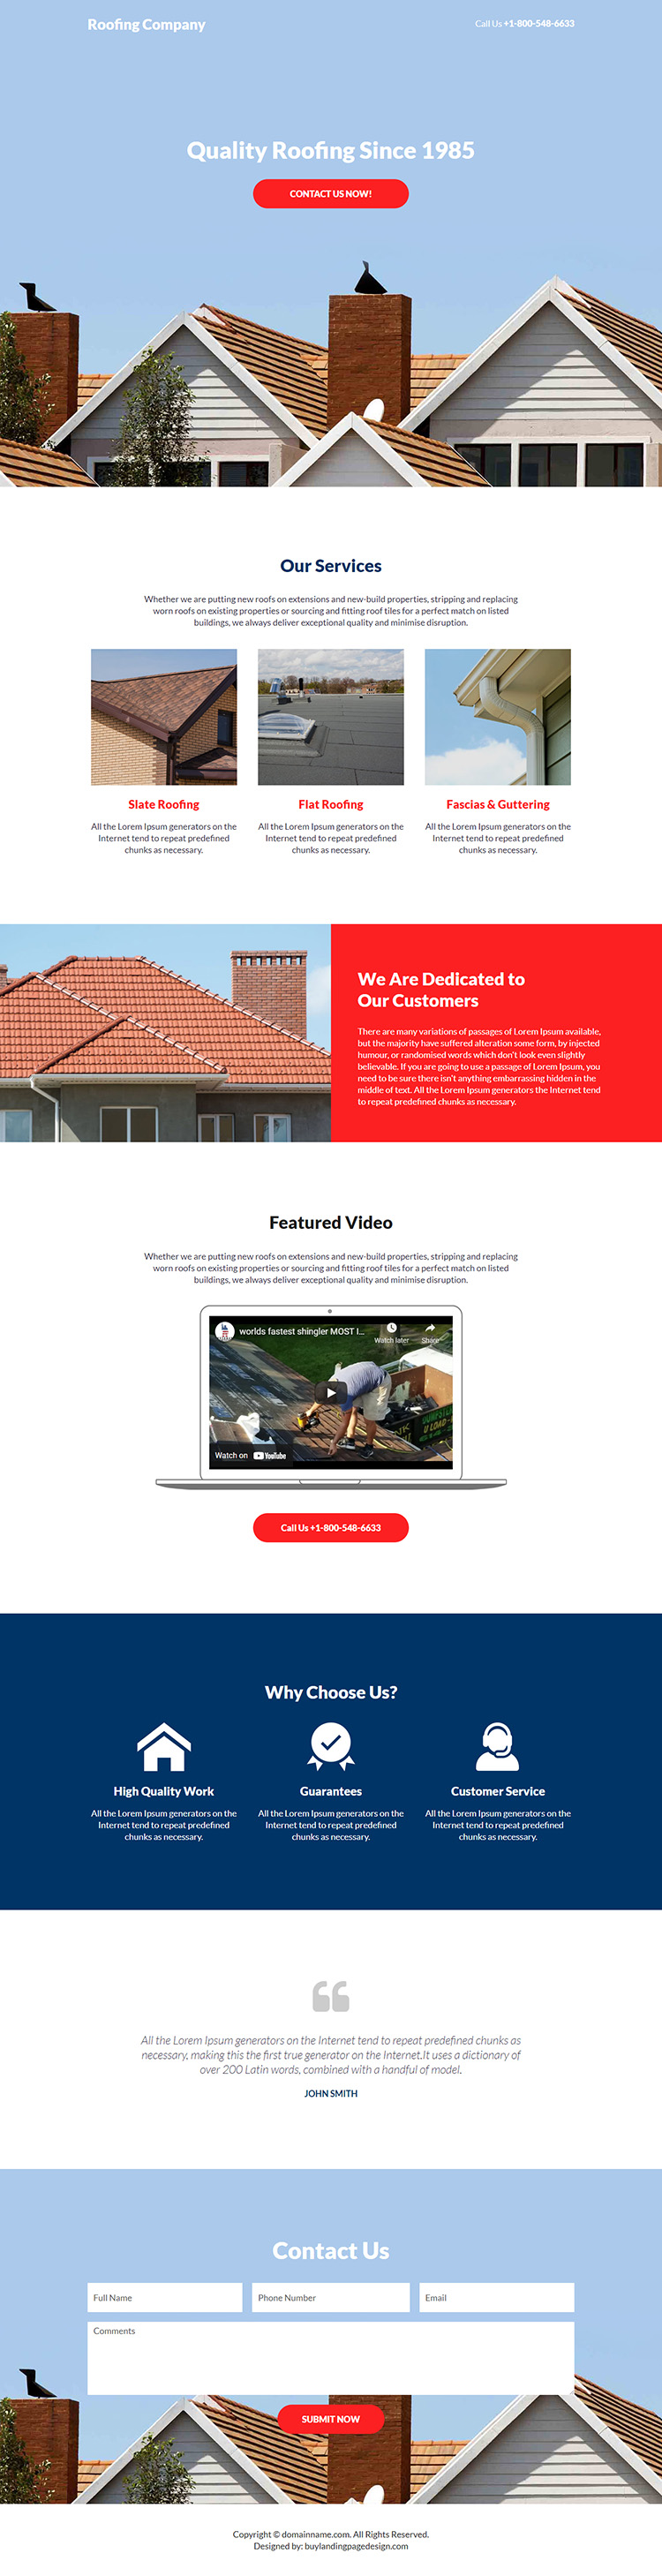 roofing company responsive lead capture landing page design